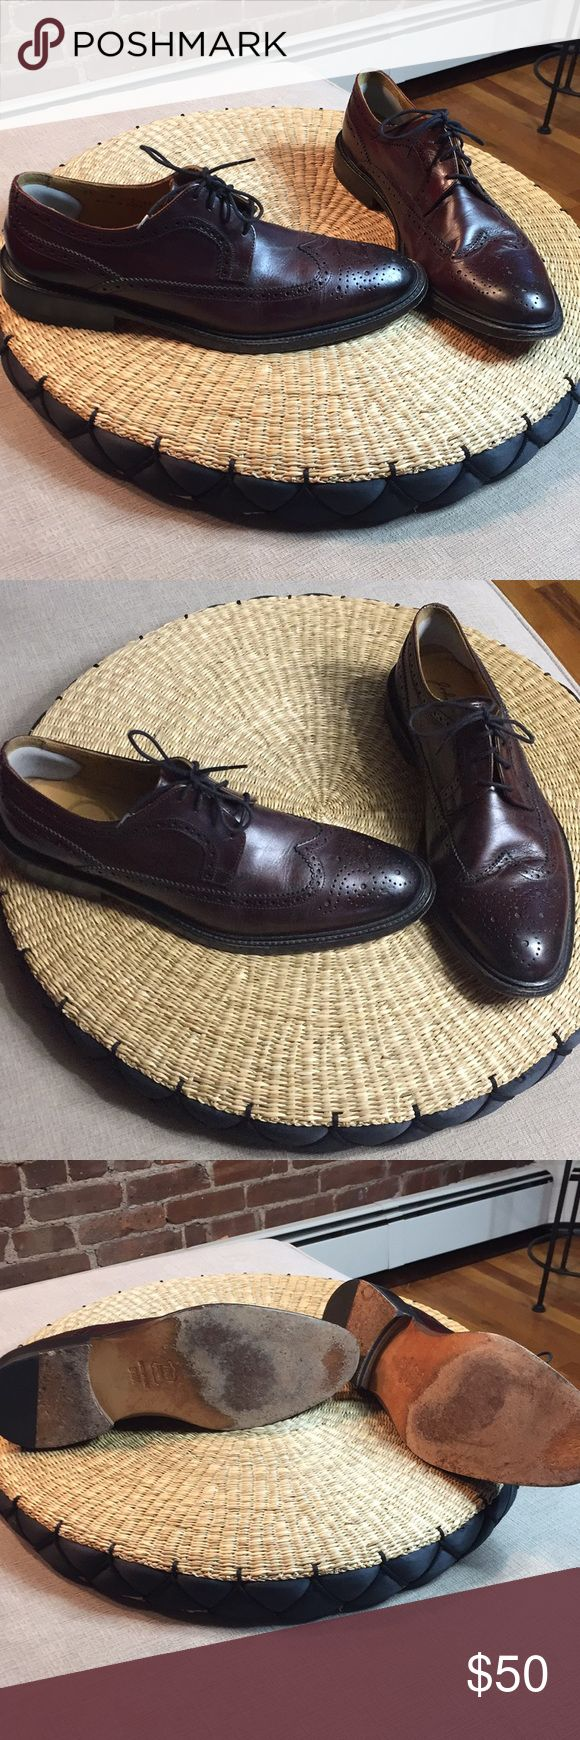 🖤SALE Brown Leather Shoes Beautiful brown shoes, made in Italy, gently worn, size 9.5. John W. Nordstrom Shoes Oxfords & Derbys